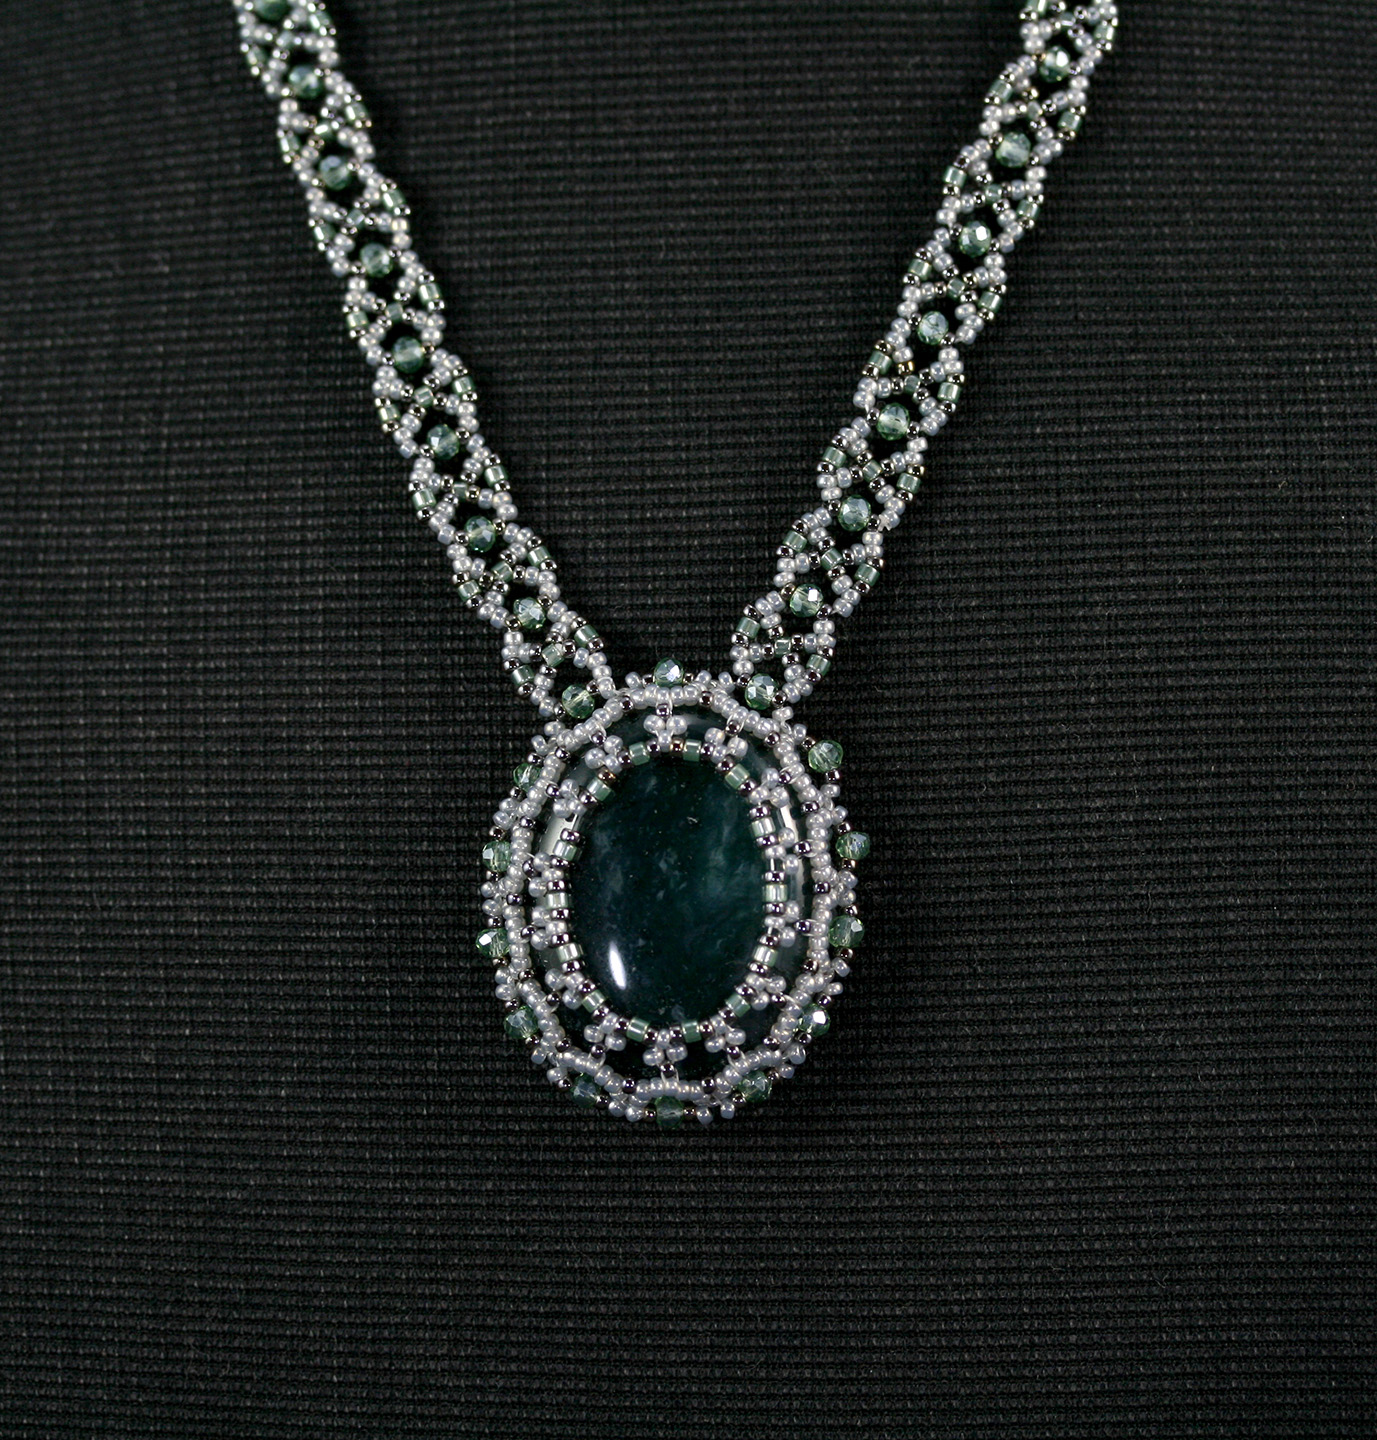 Caged crystal necklace and earring set